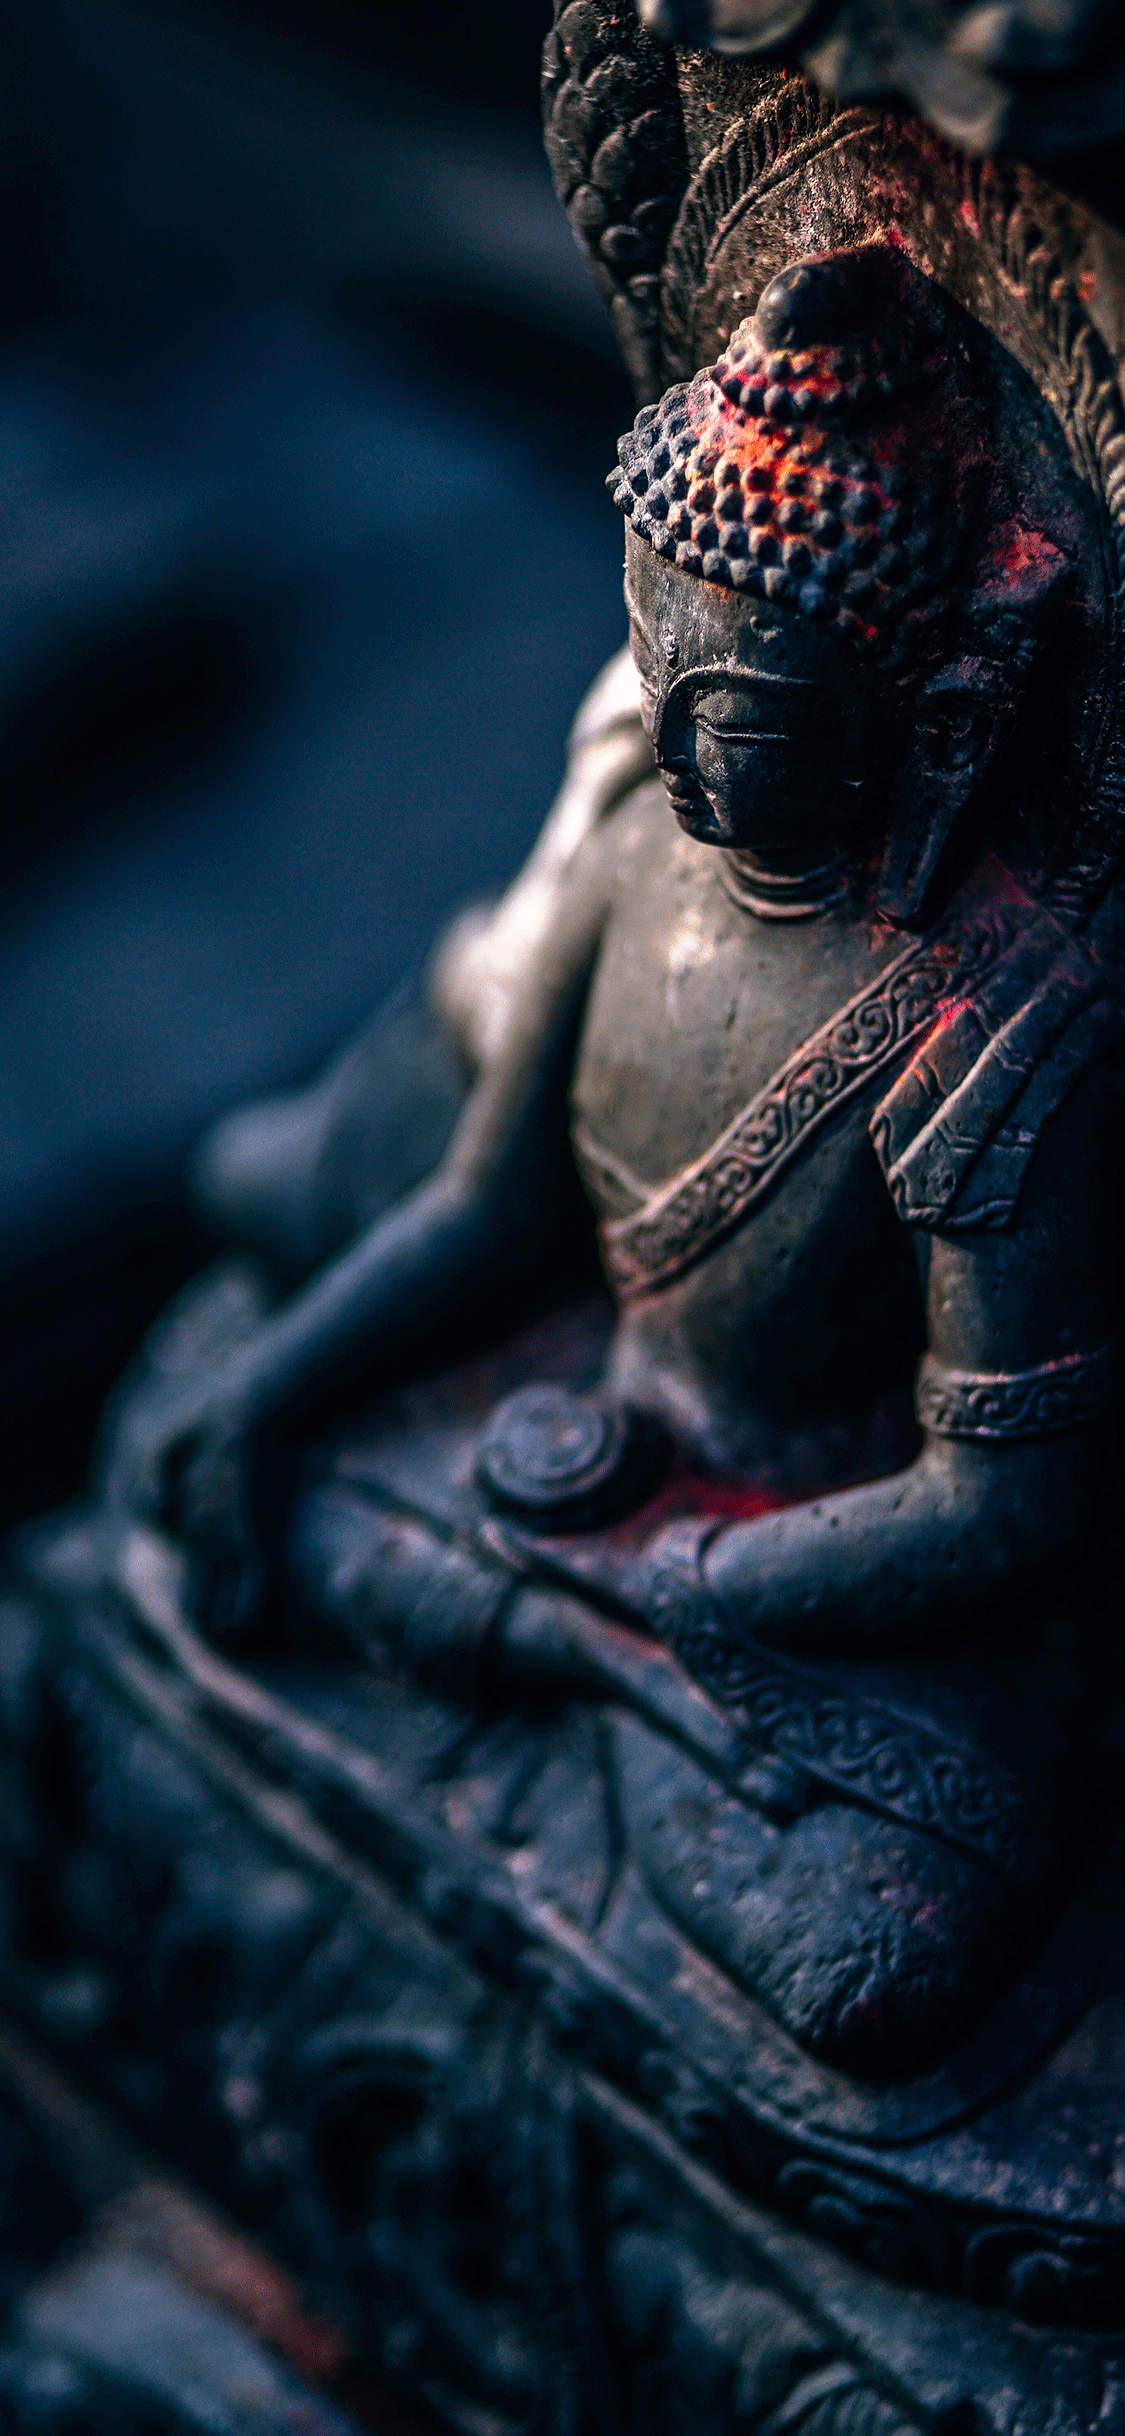 iPhone wallpaper budha nepal Budha